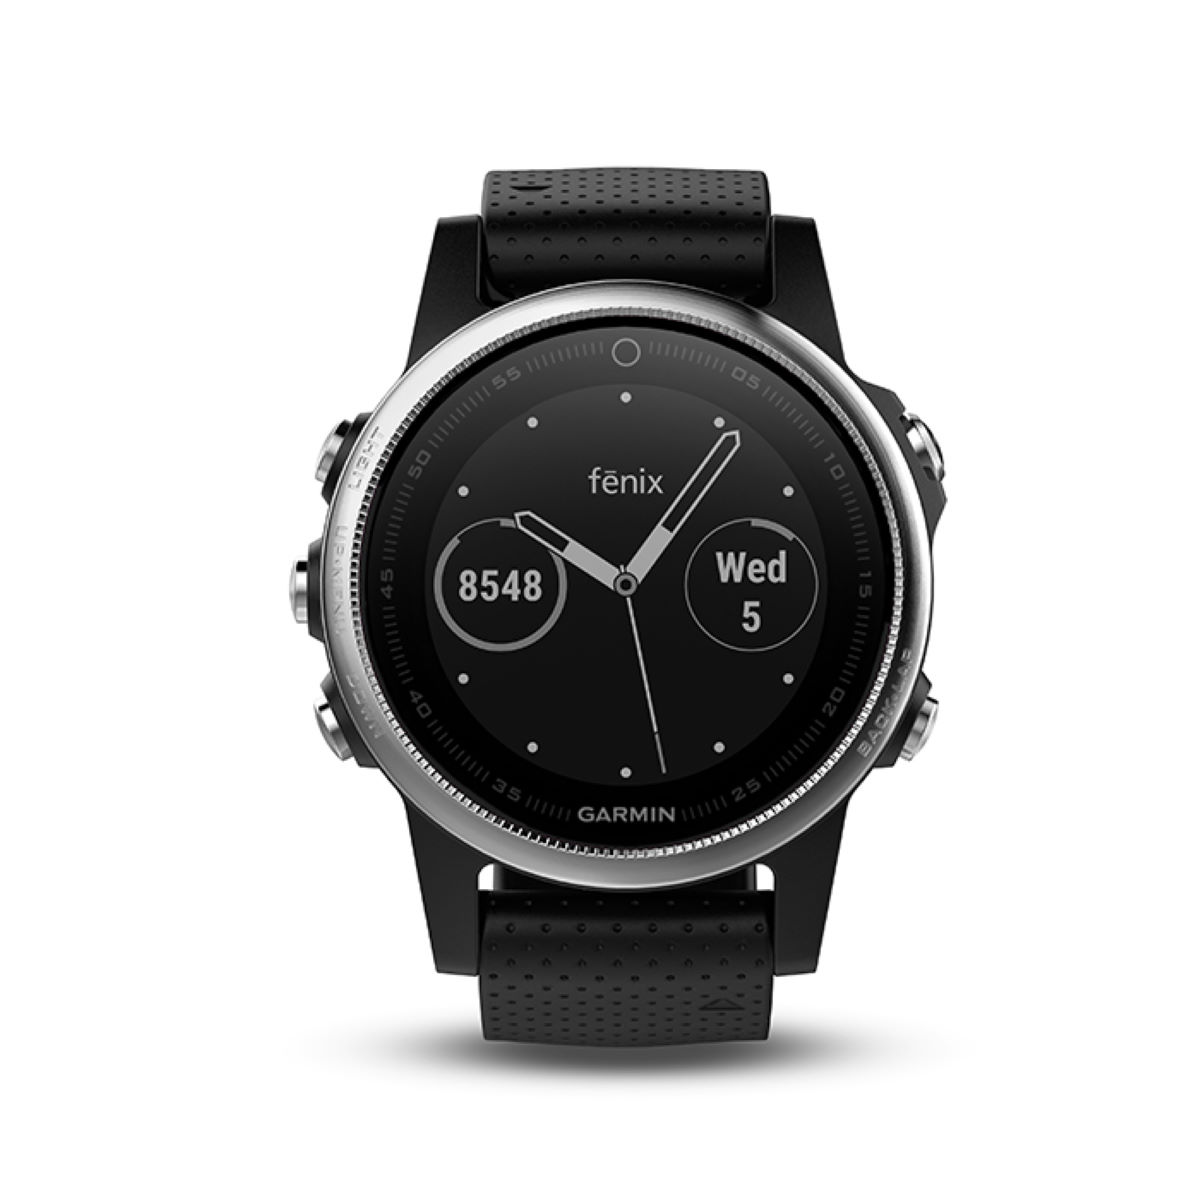 Garmin Fenix 5S GPS Watch Sports Watches Review